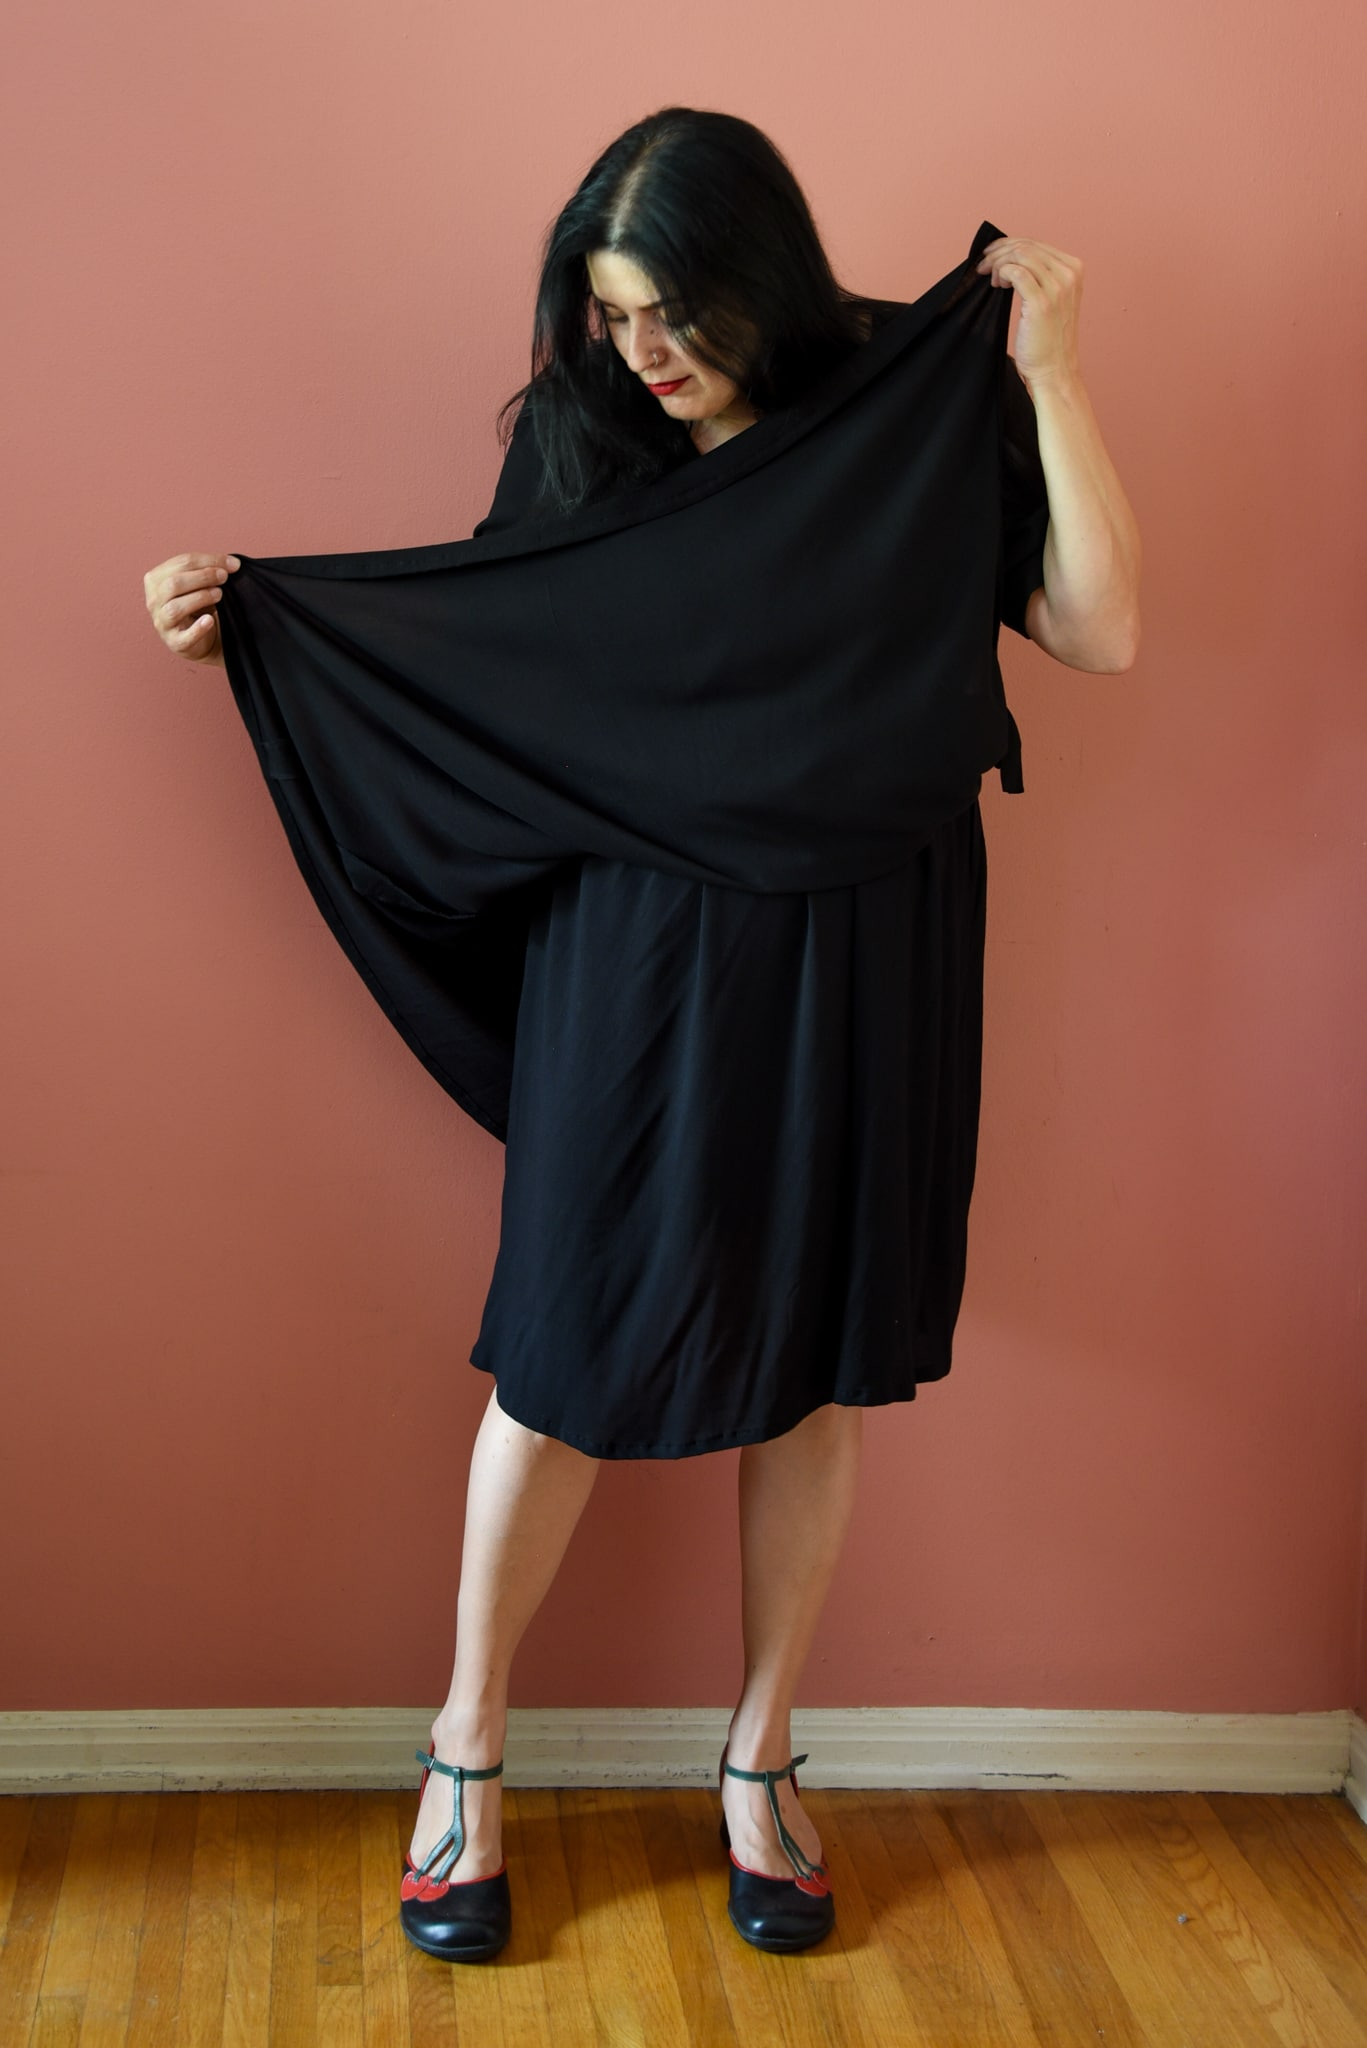 Image of a woman wearing a black wrap dress while demonstrating how the underskirt keeps the dress from revealing skin.